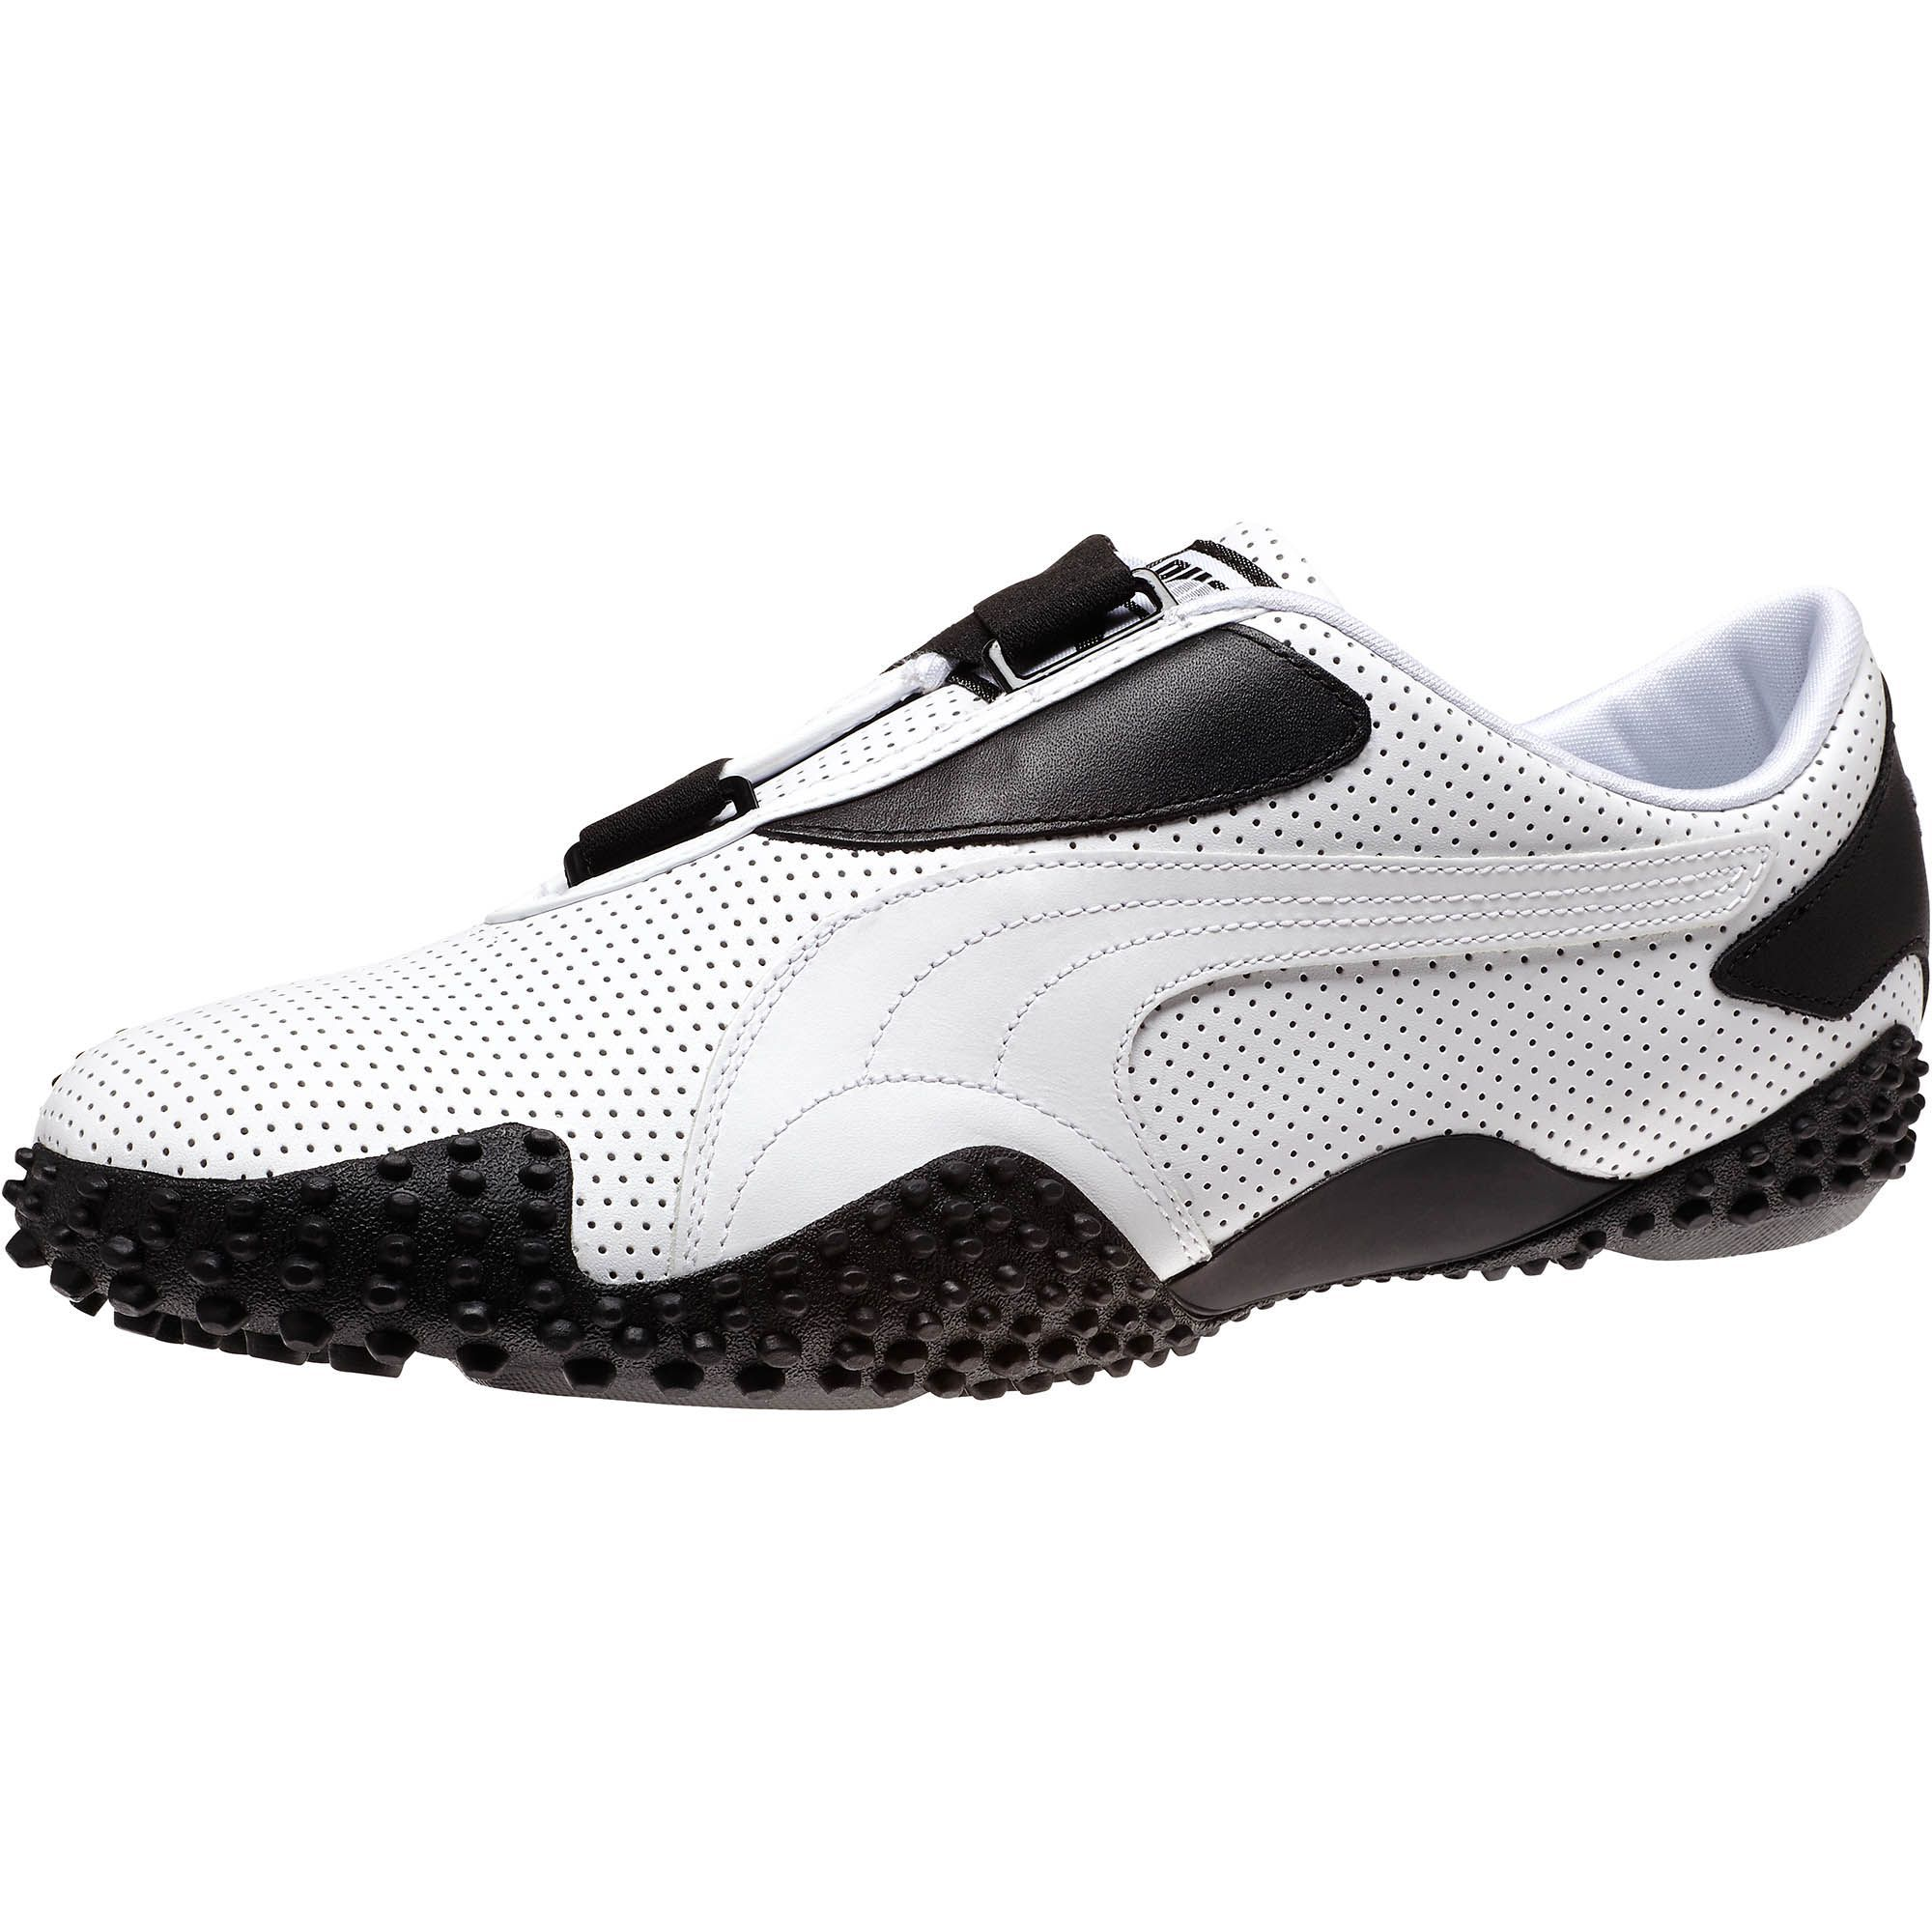 PUMA Mostro Perf Leather Shoes  c92eafdad